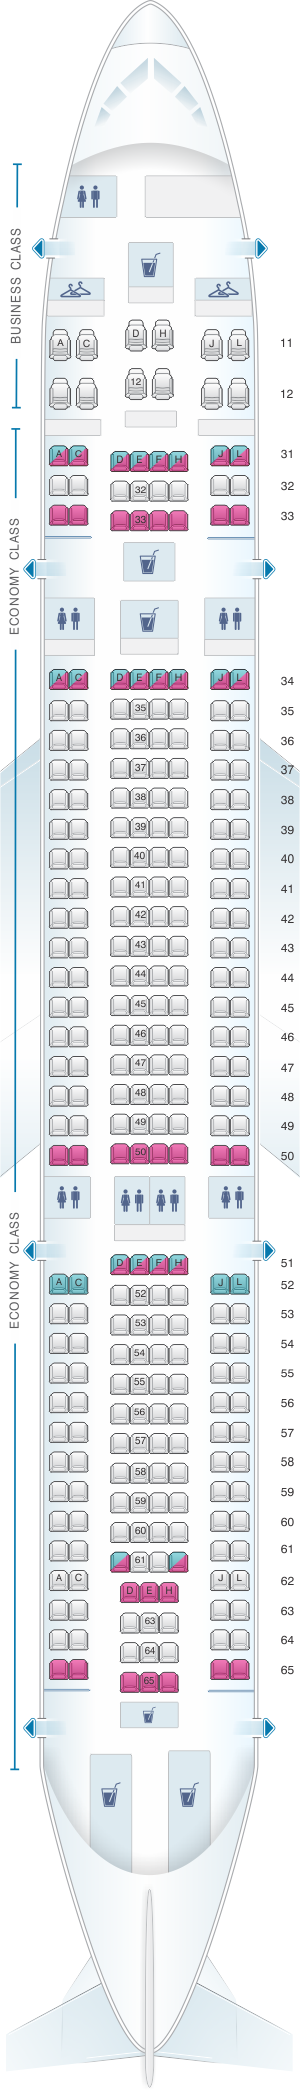 Seat map for Air China Airbus A330 200 (283PAX)